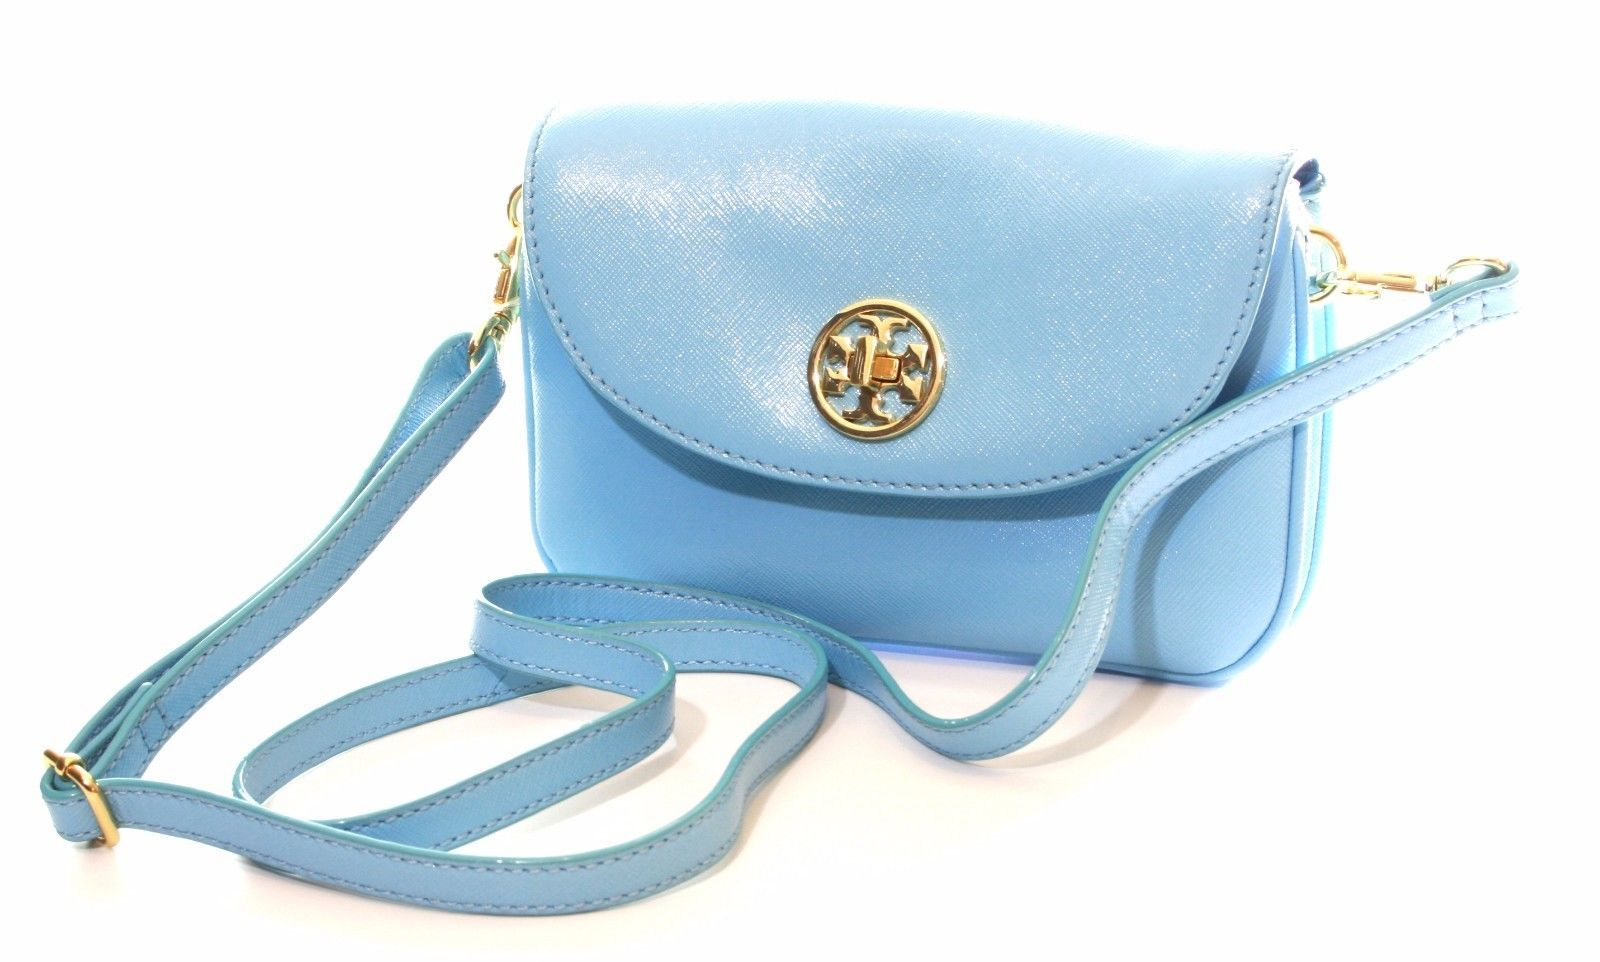 Primary image for Tory Burch Robinson Cross Body Bag Morning Sky Light Blue Small Handbag